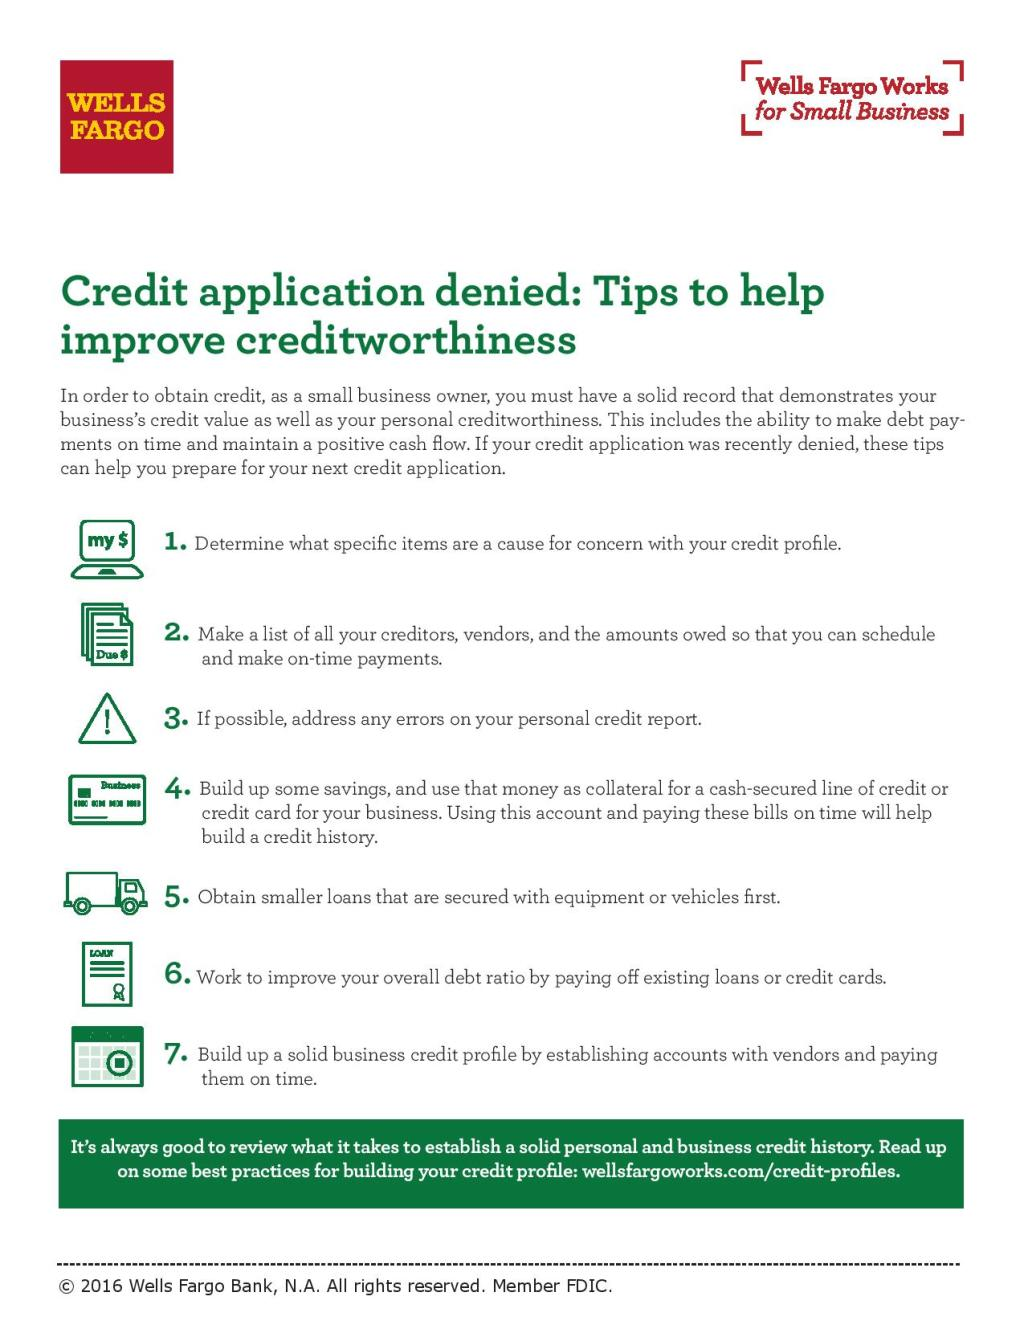 Tips for improving creditworthiness wells fargo credit application denied tips to help improve creditworthiness reheart Image collections